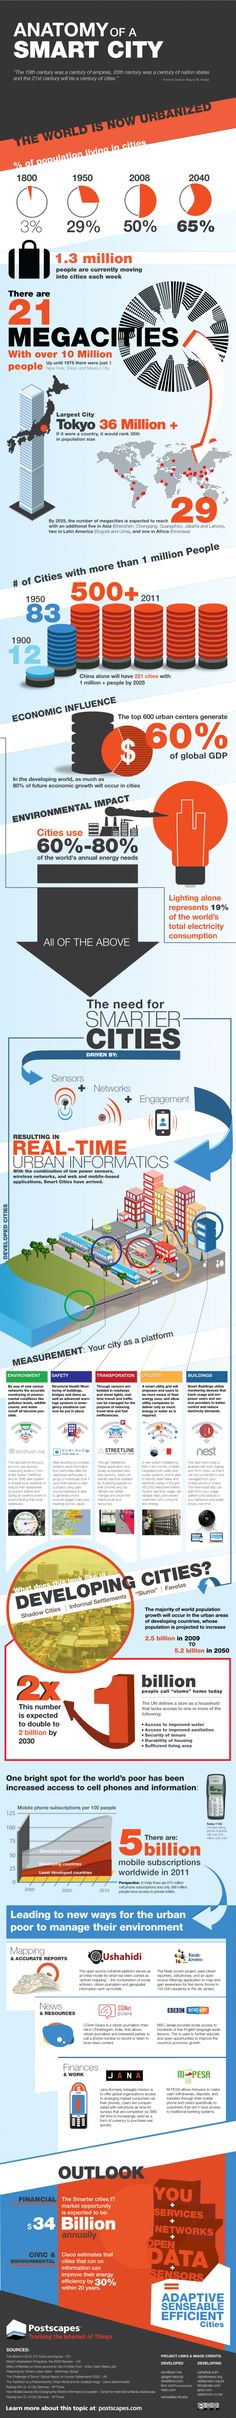 Anatomy of a Smart City / Anatomia de la Ciudad Inteligente #smartcity #infografia #infographic